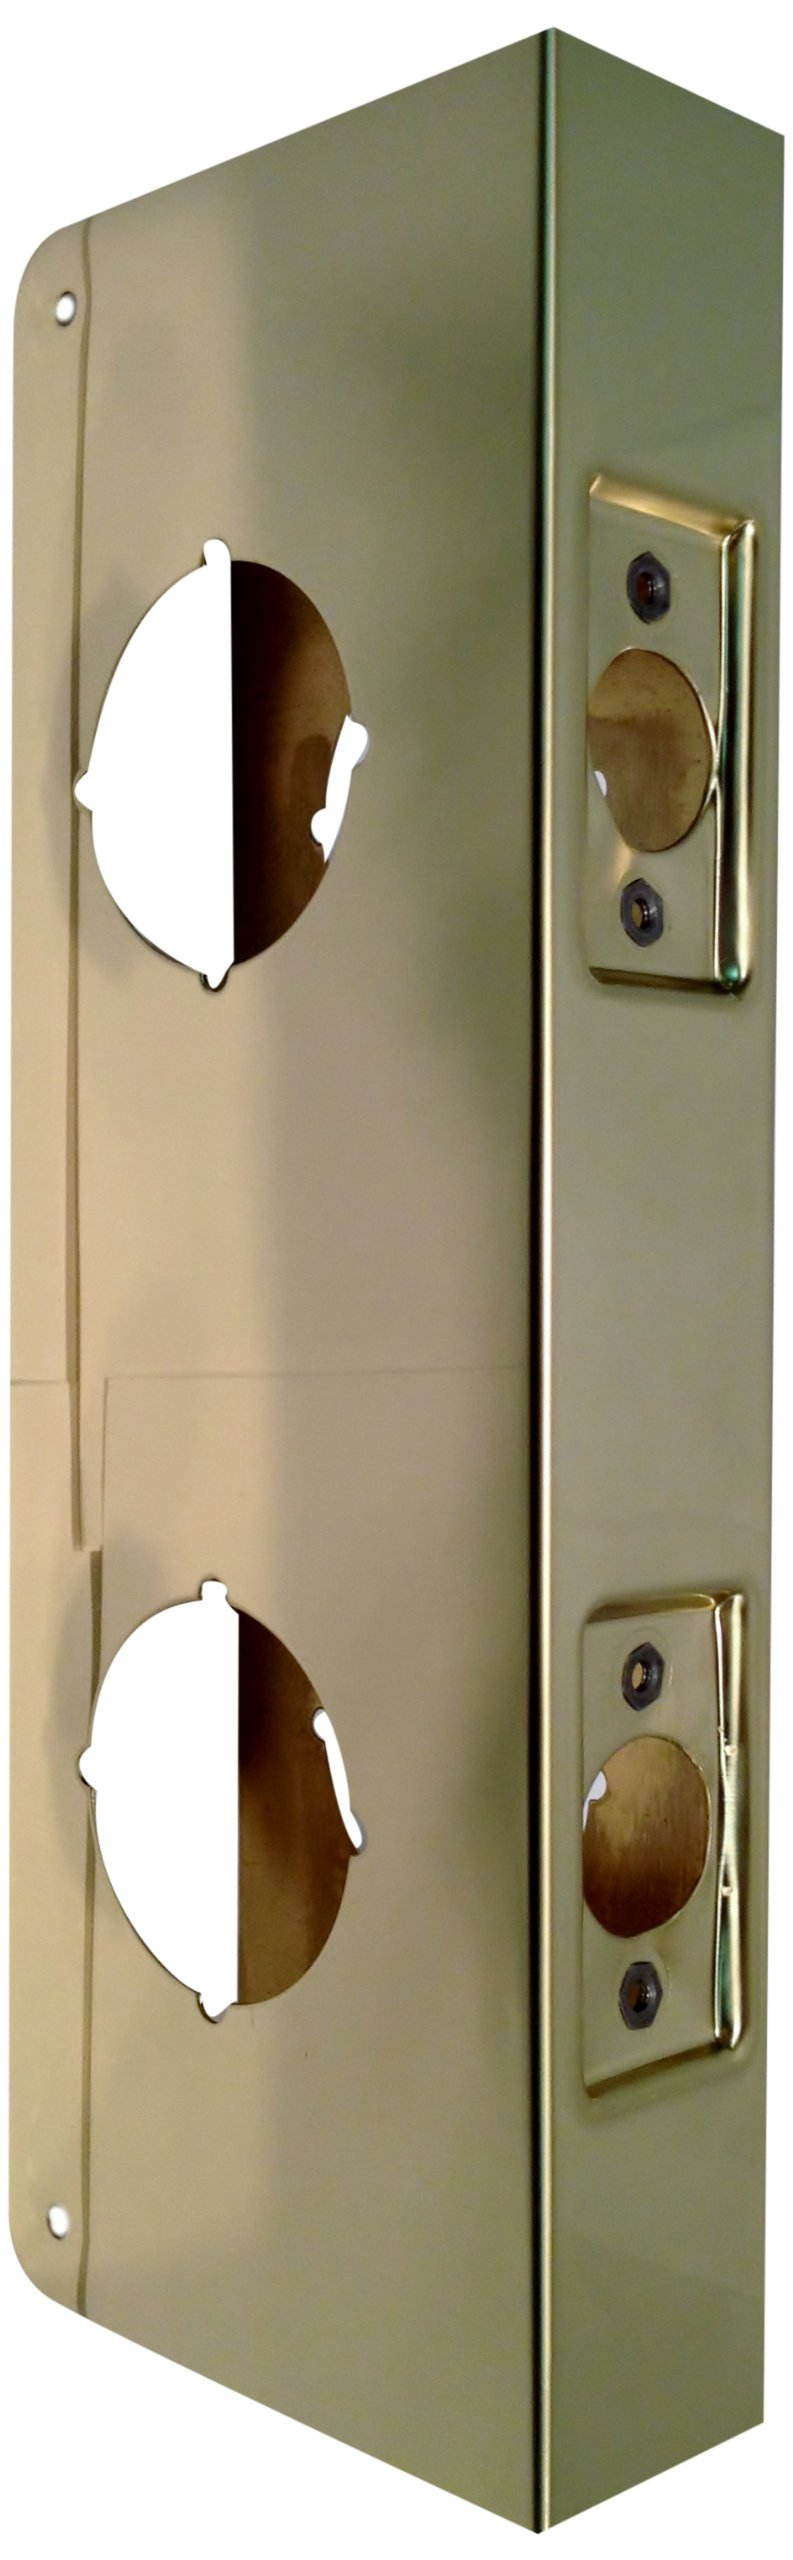 Don-Jo 481-PB-CW 22 Gauge Polished Brass Classic Wrap-Around Plate, Polished Brass Finish, 4-1/4'' Width x 9'' Height, 2-3/4'' Backset, 1-3/4'' Door Size, For Double Lock Combination Locksets (Pack of 10)